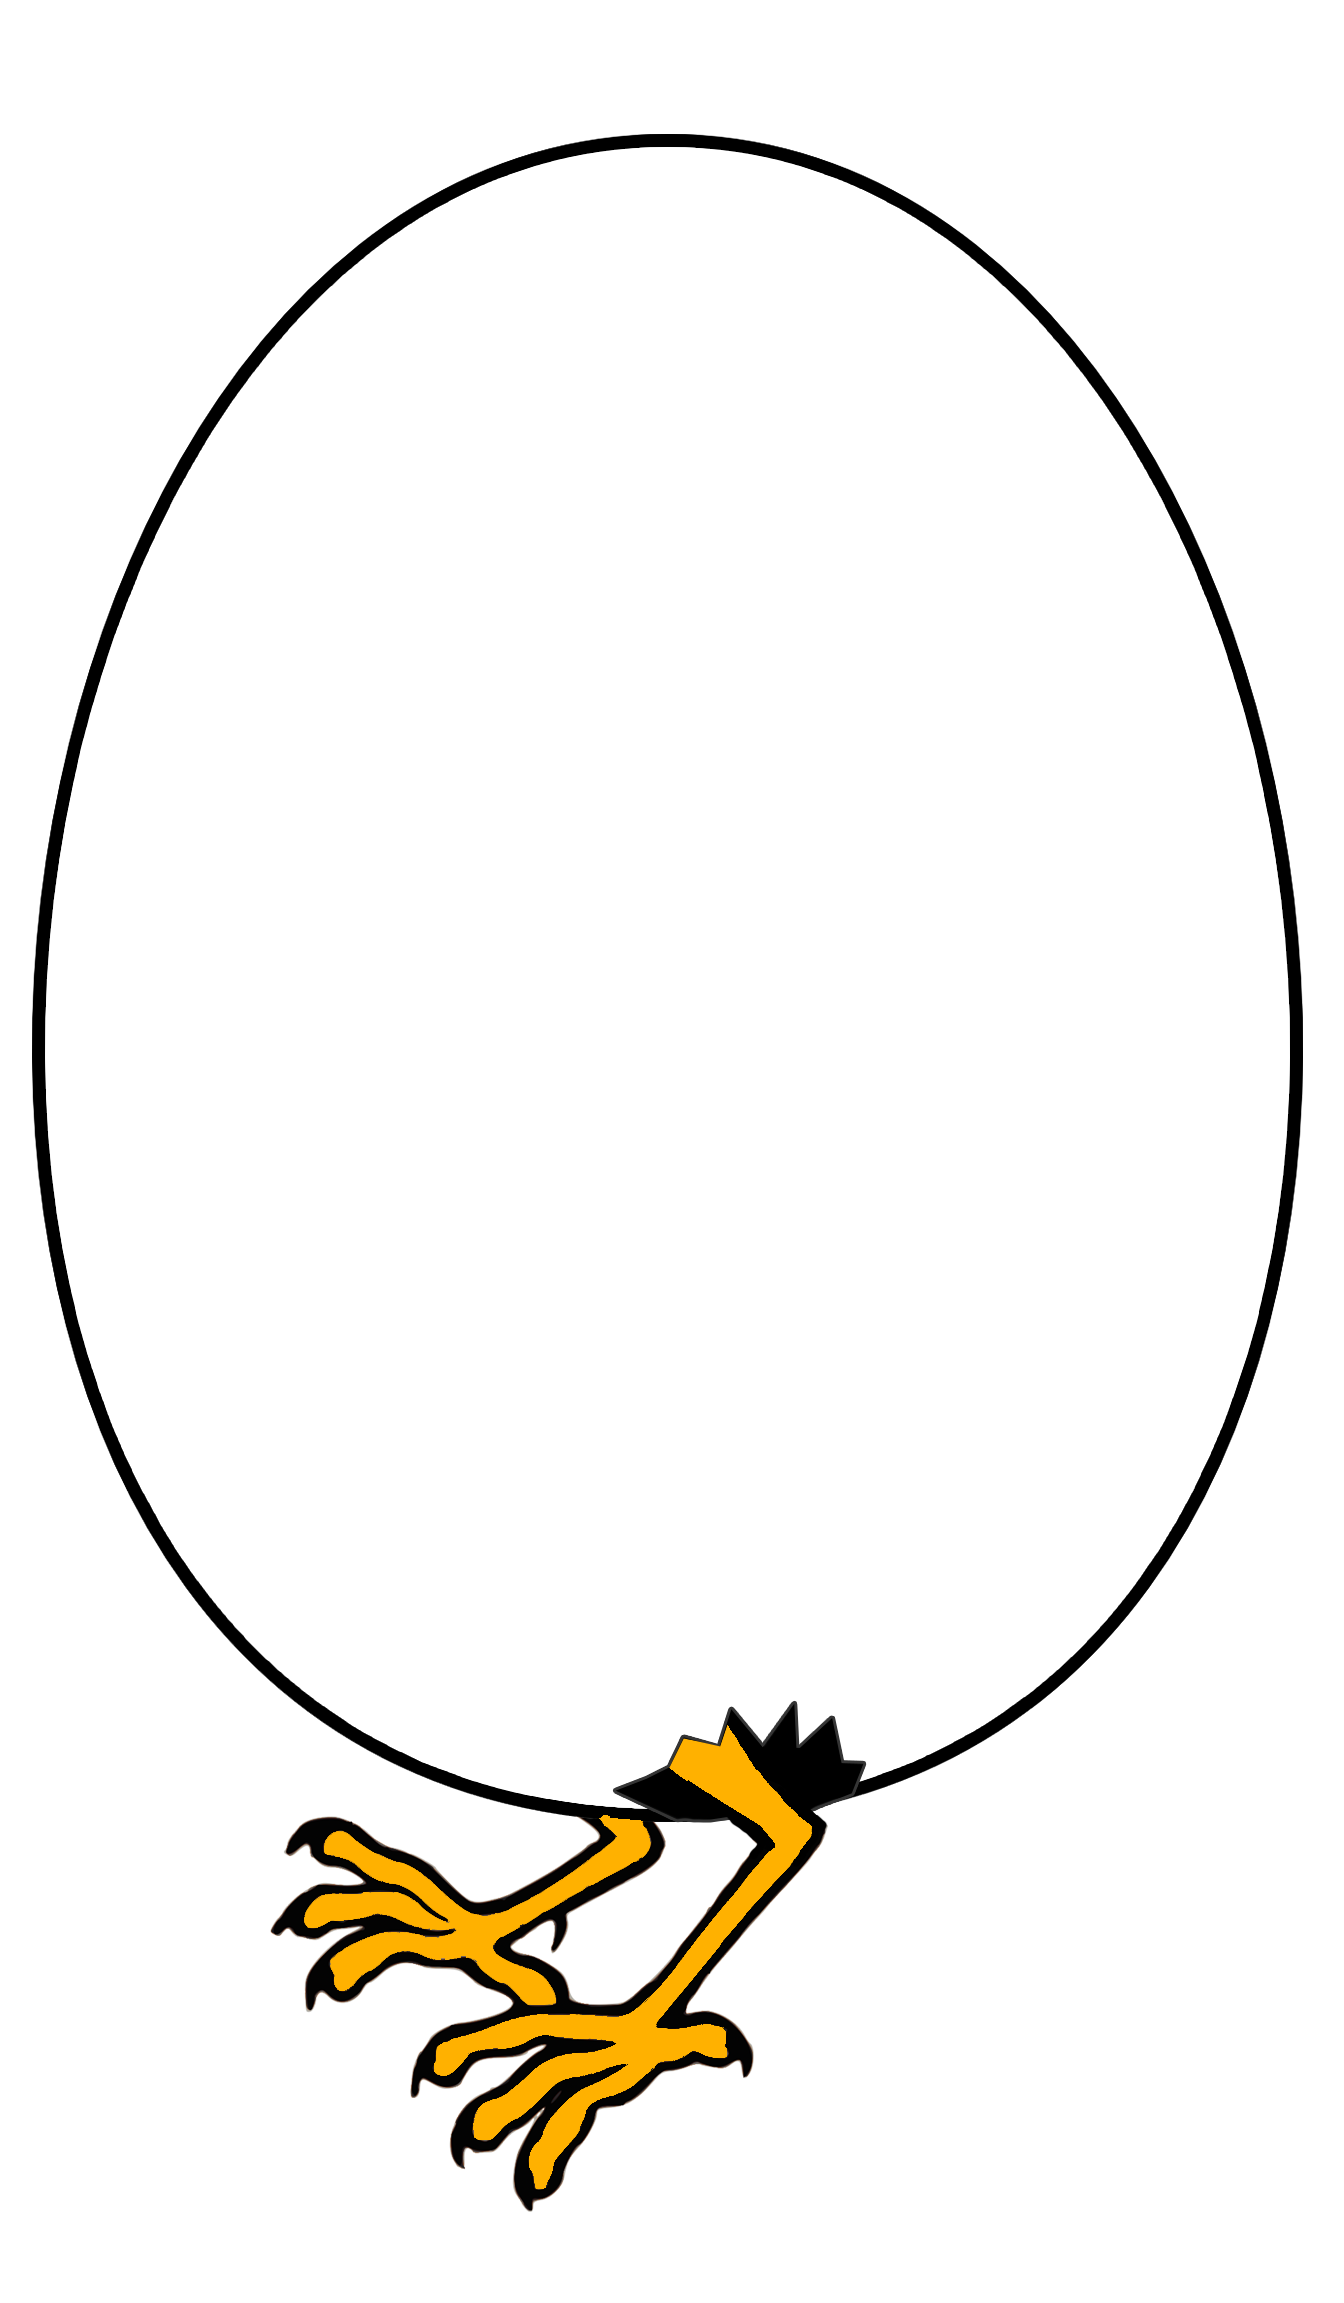 Graphical egg photo